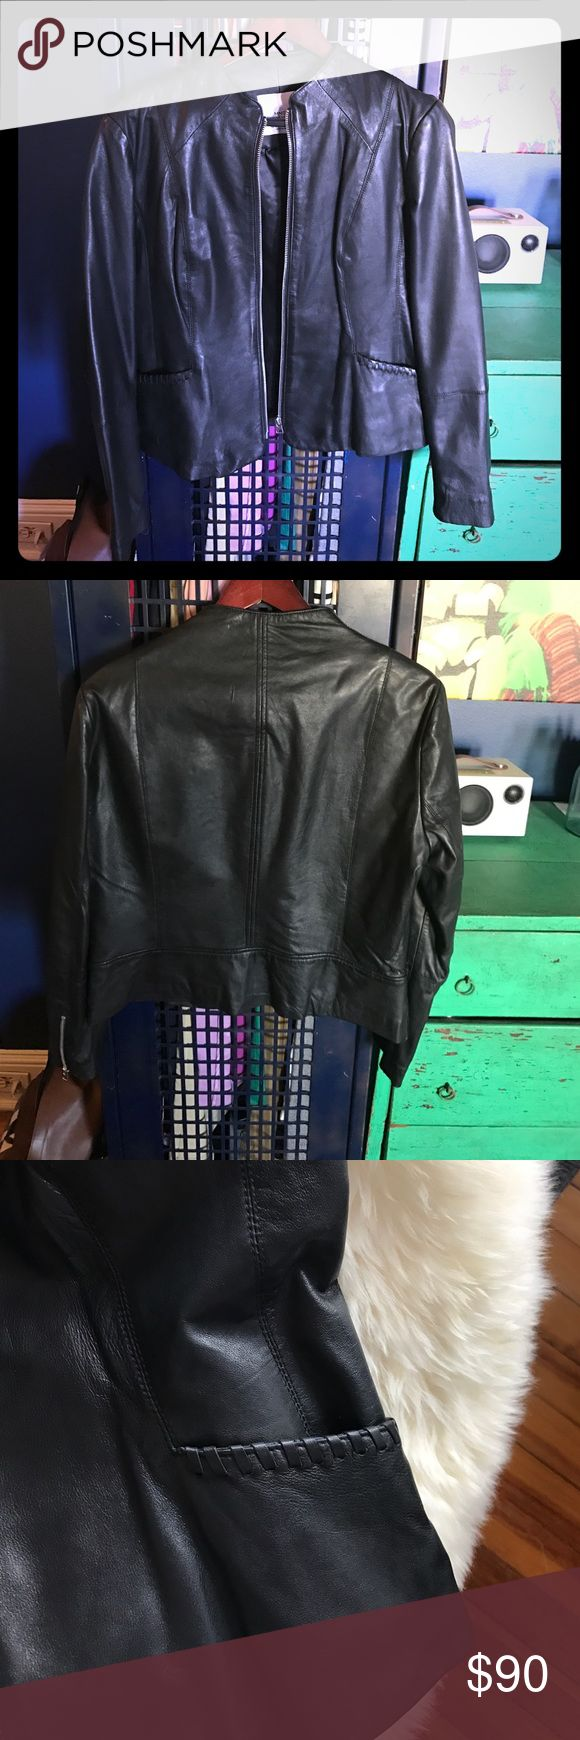 (Never Worn) MANGO leather jacket I love this piece because it can be worn as outerwear or as a blazer in colder weather. Great details on pockets and sleeves. Never worn, condition like new. Mango Jackets & Coats